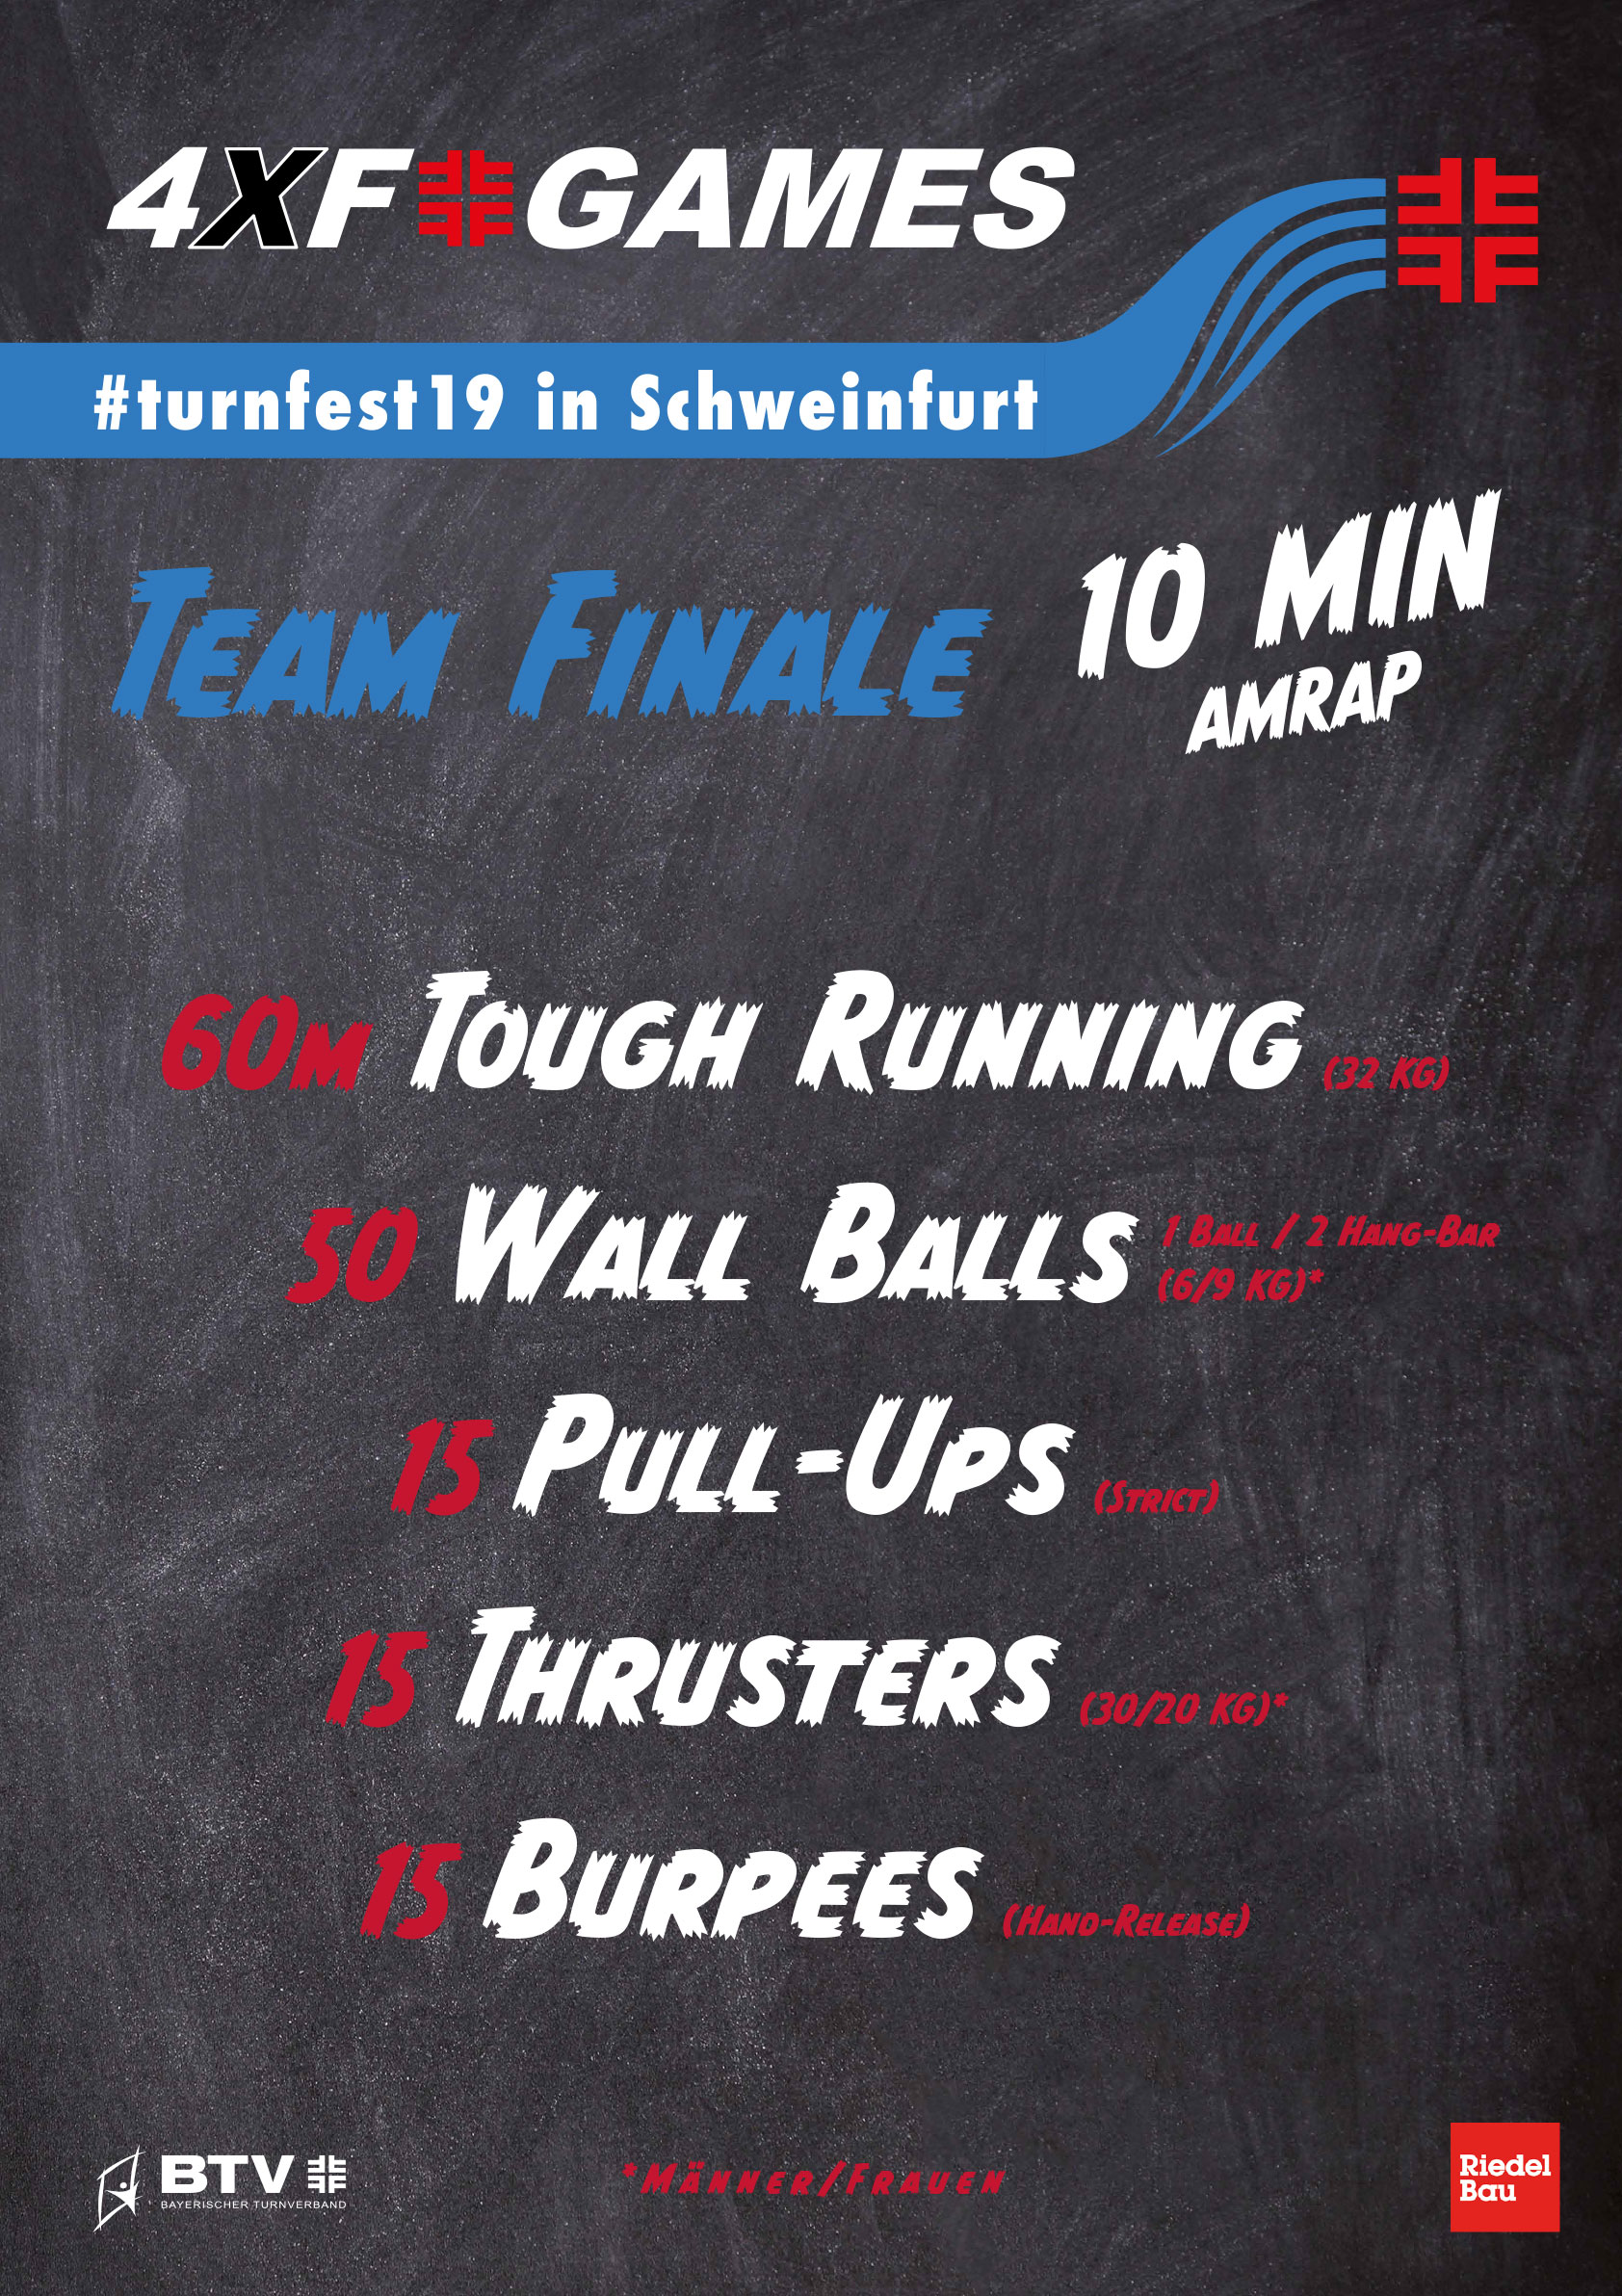 4xf games turnfest19 wod team finals